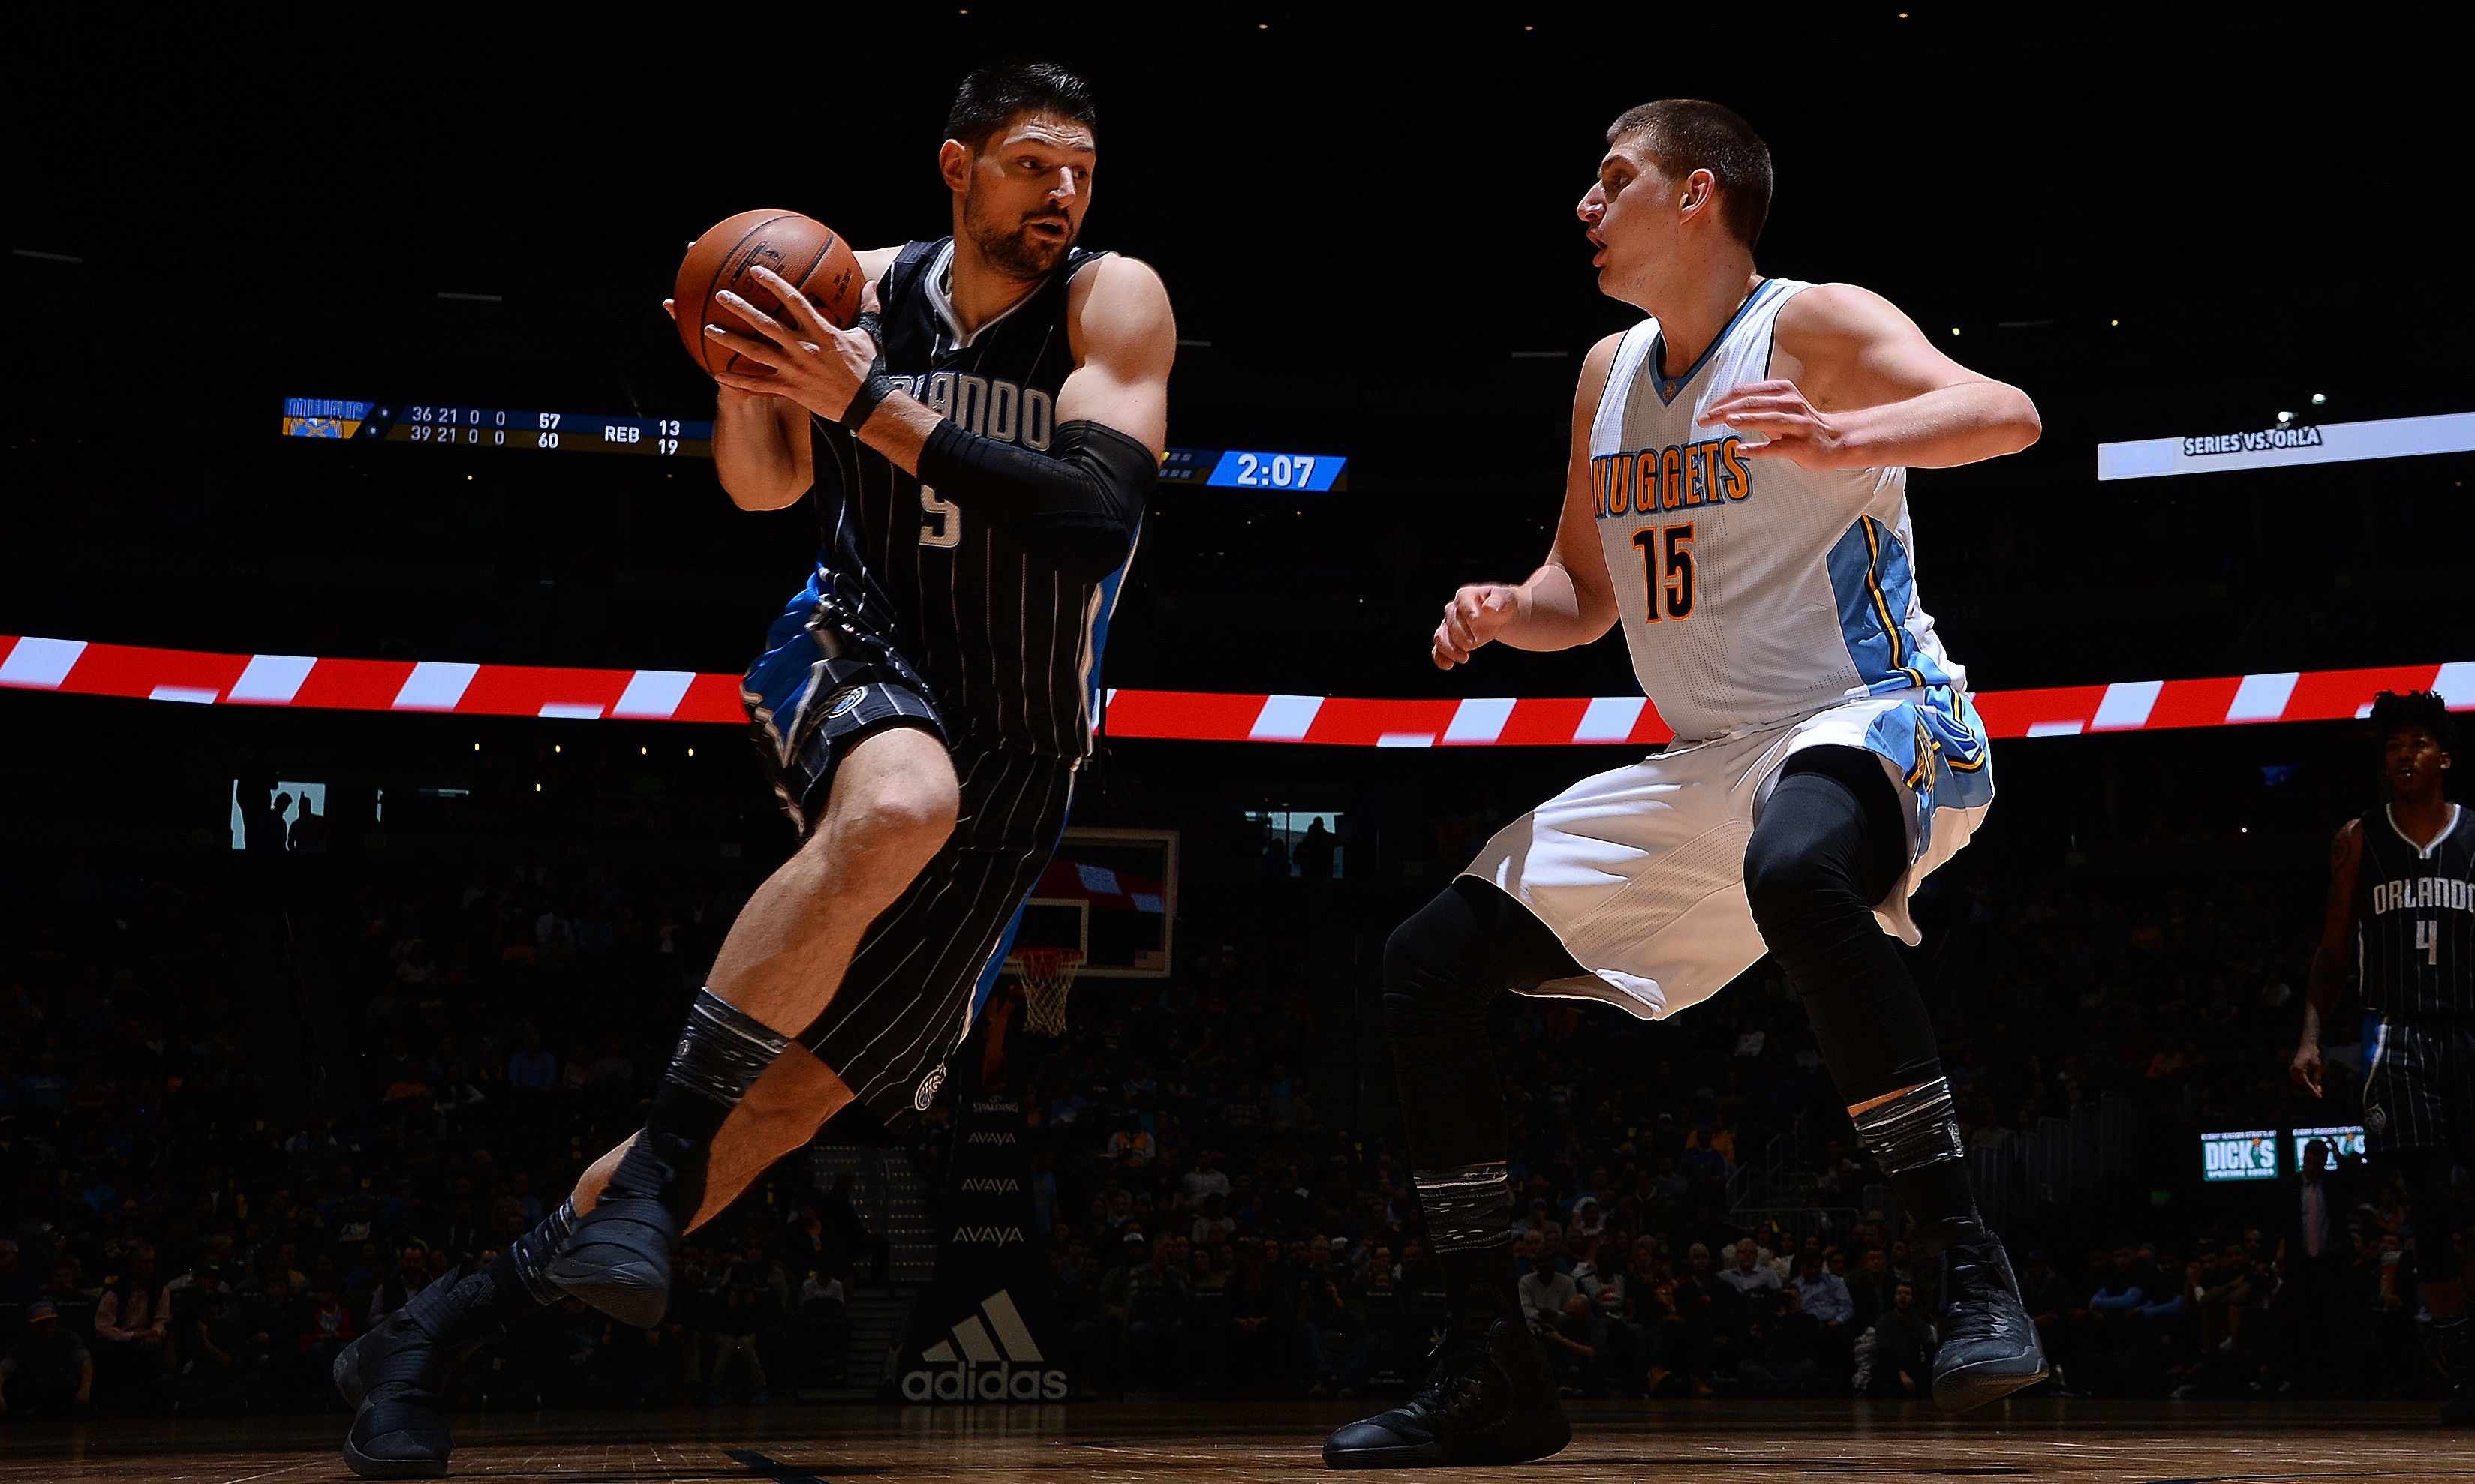 Nikola-vucevic-magic-nuggets-2017